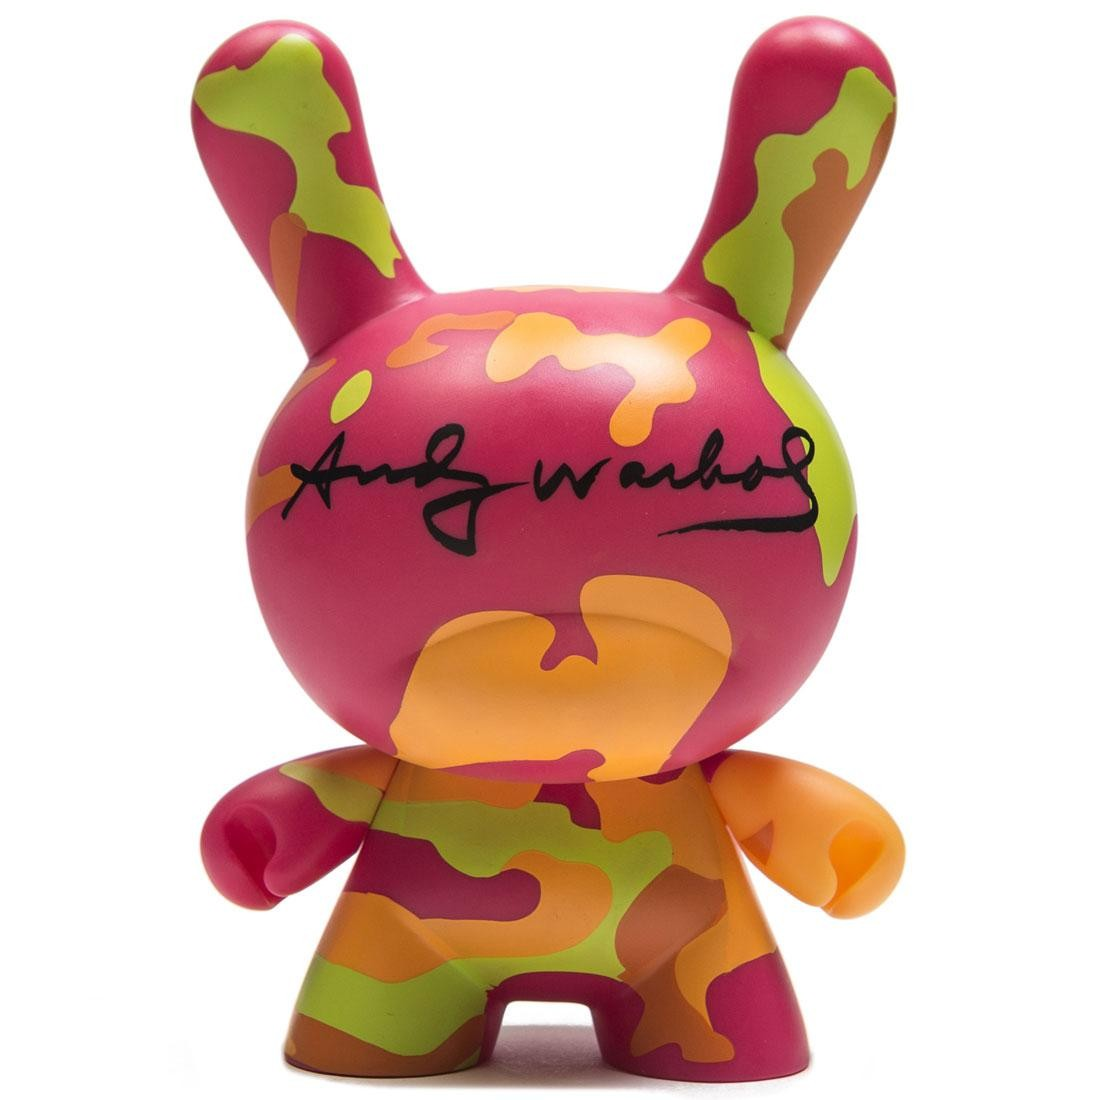 Kidrobot x Andy Warhol 8 Inch Masterpiece Camo Dunny Figure (pink)